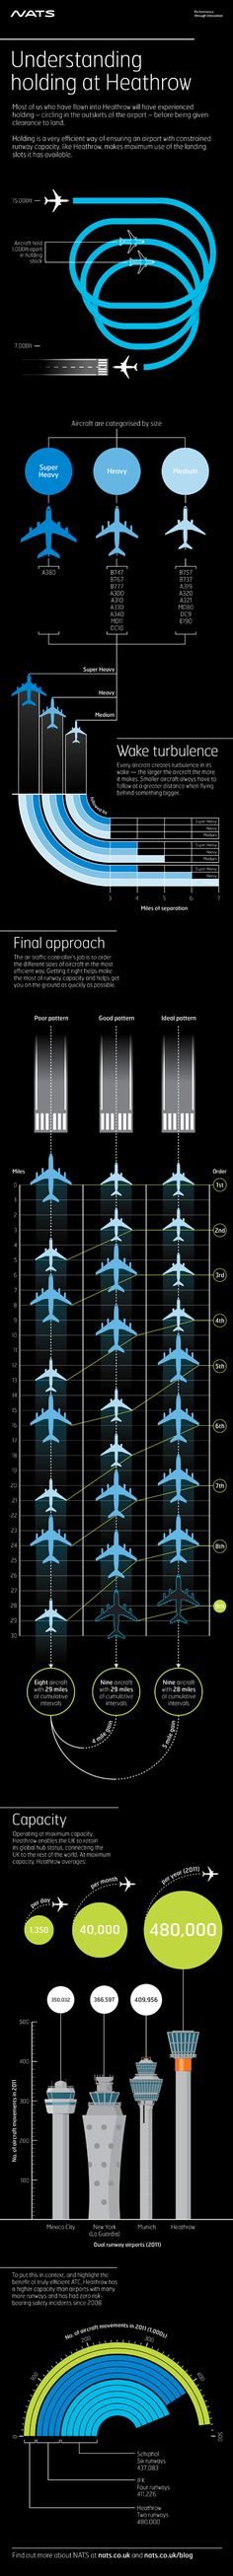 Infographic: Holding at Heathrow